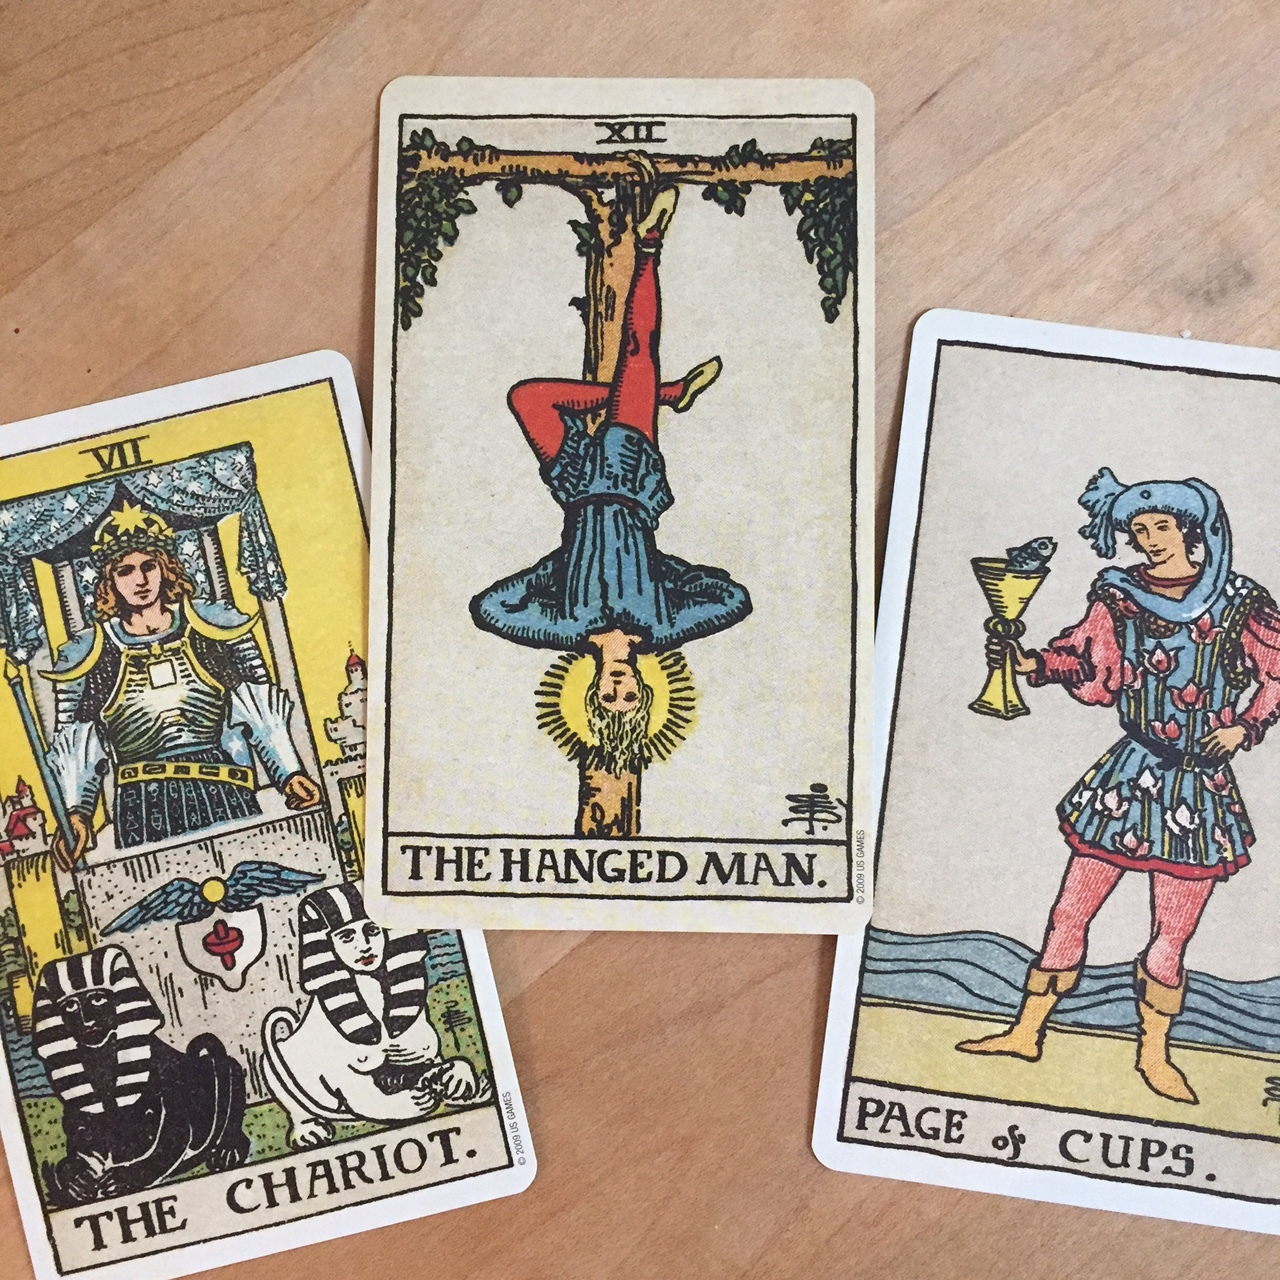 Tarot reading with Rider-Waite deck Page of Cups The Chariot and The Hanged Man